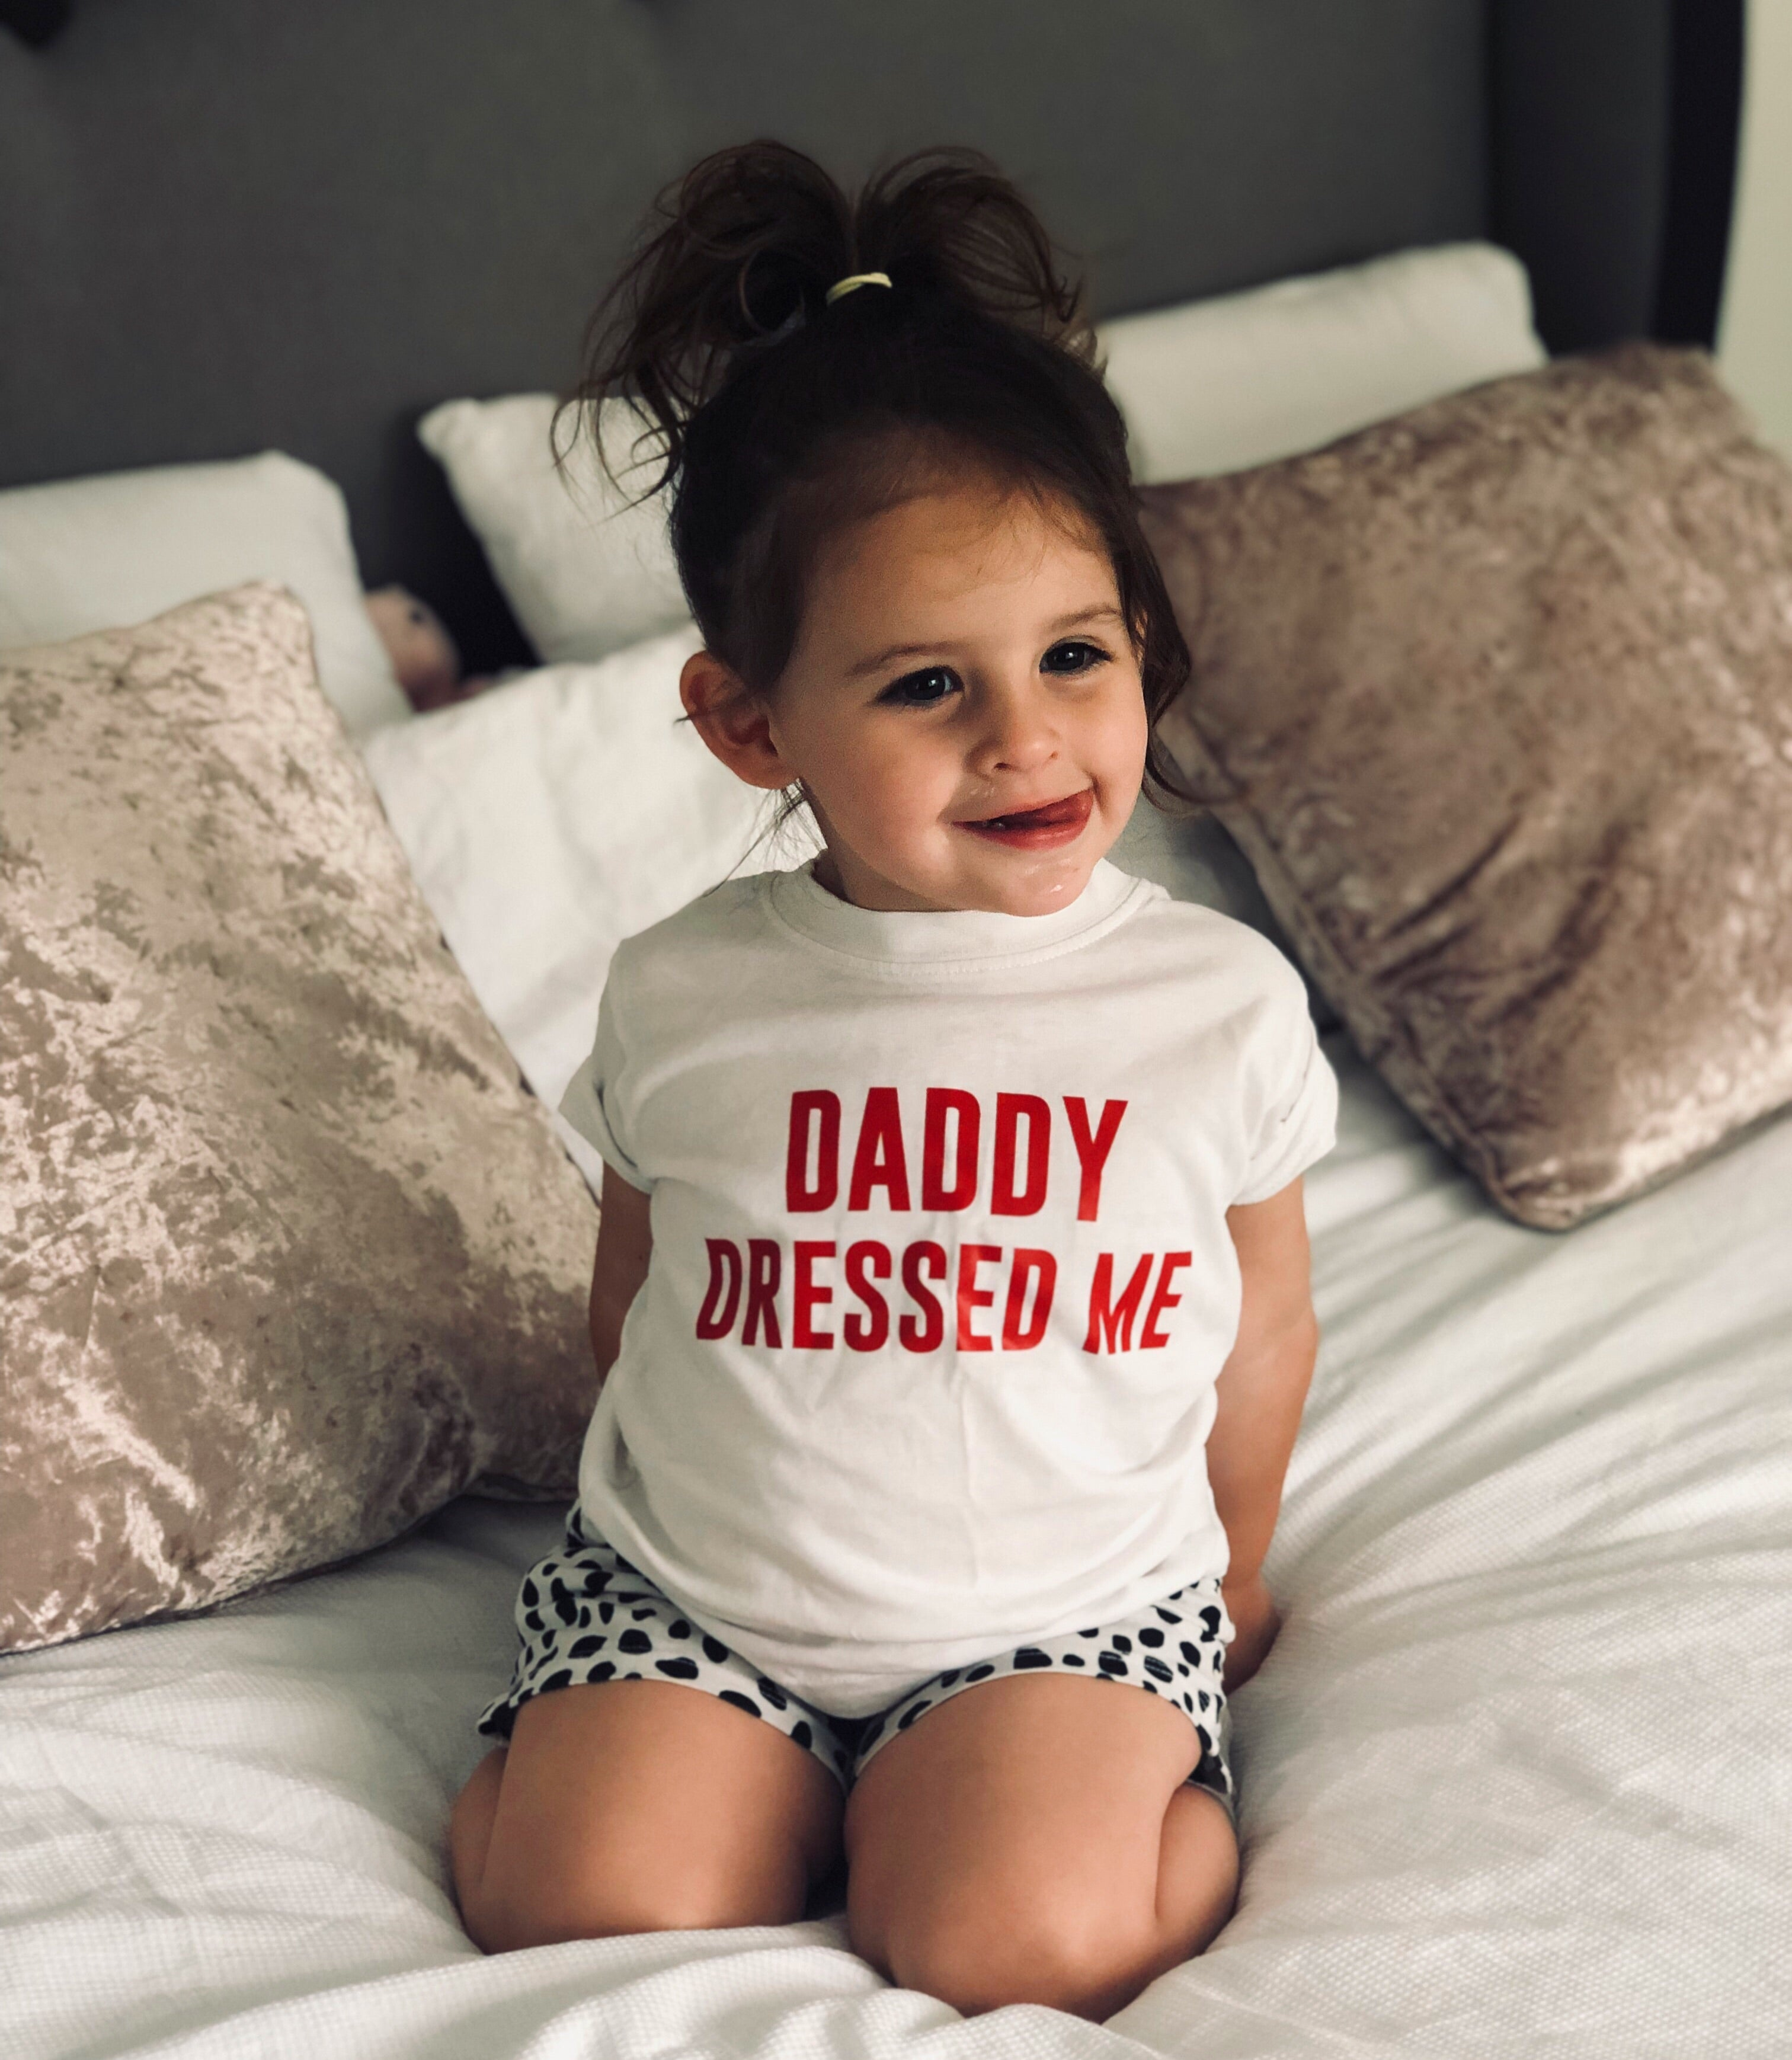 Daddy Dressed me tee